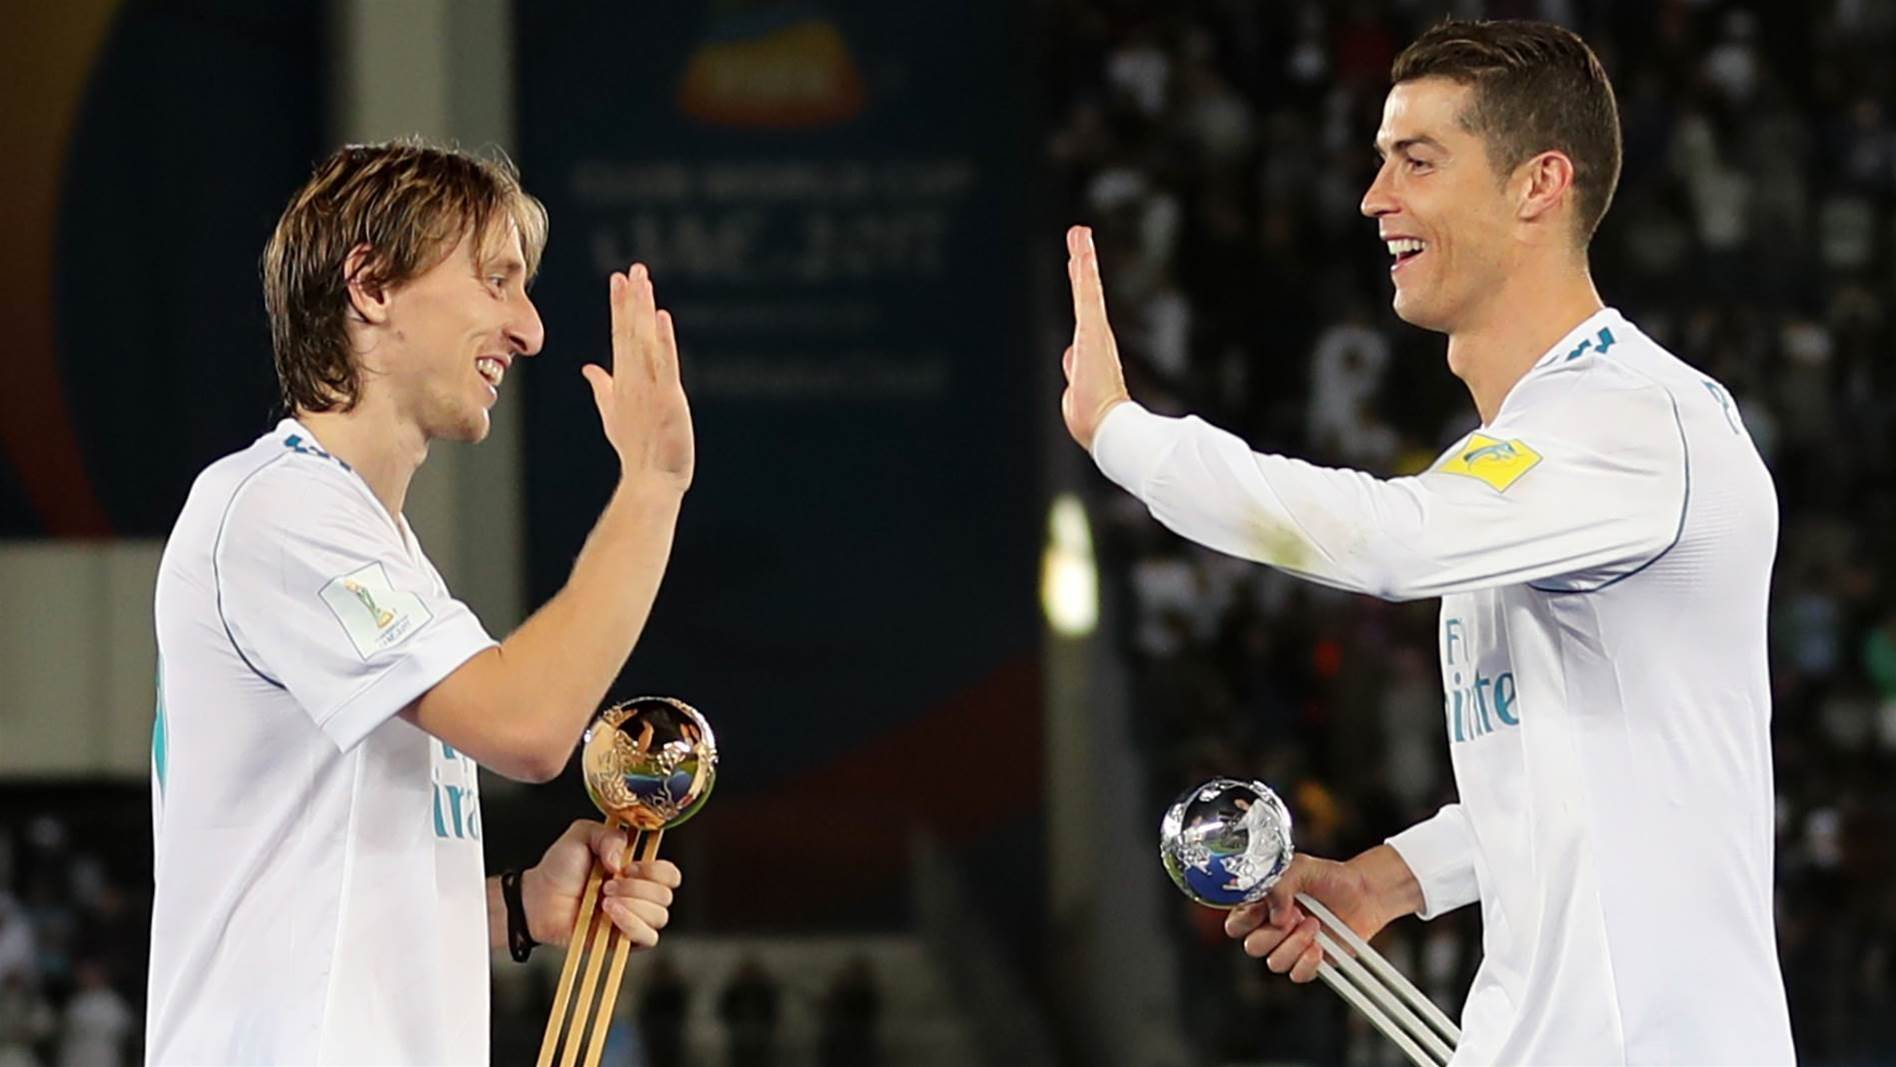 """It's a shame"": Modric responds to Ronaldo's Real Madrid departure"